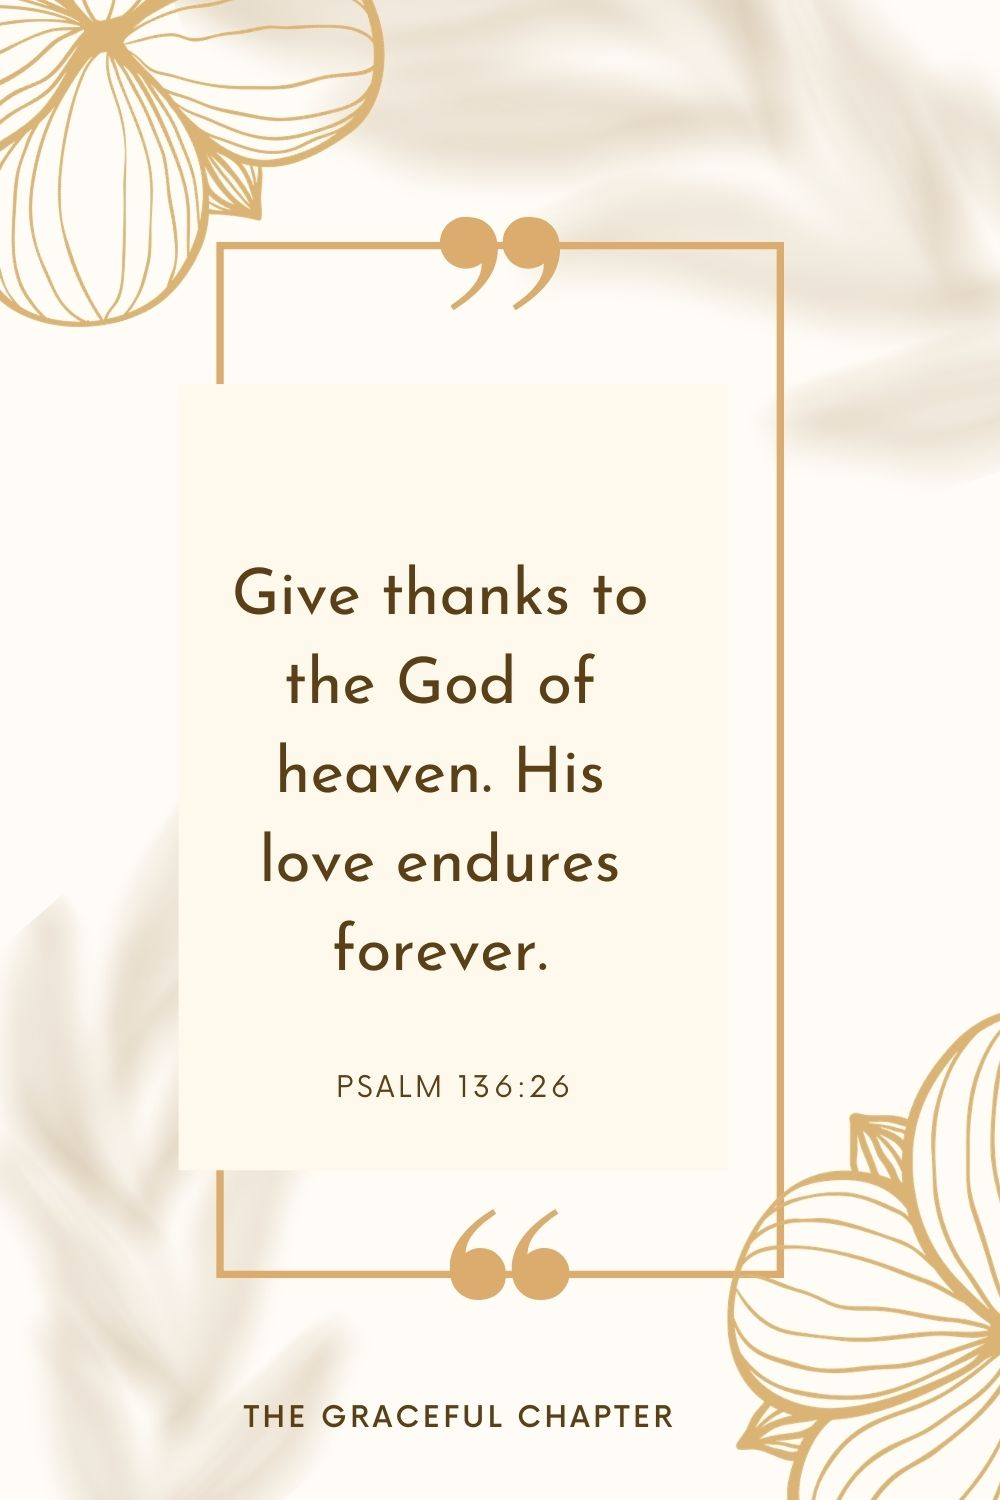 Give thanks to the God of heaven. His love endures forever. Psalm 136:26